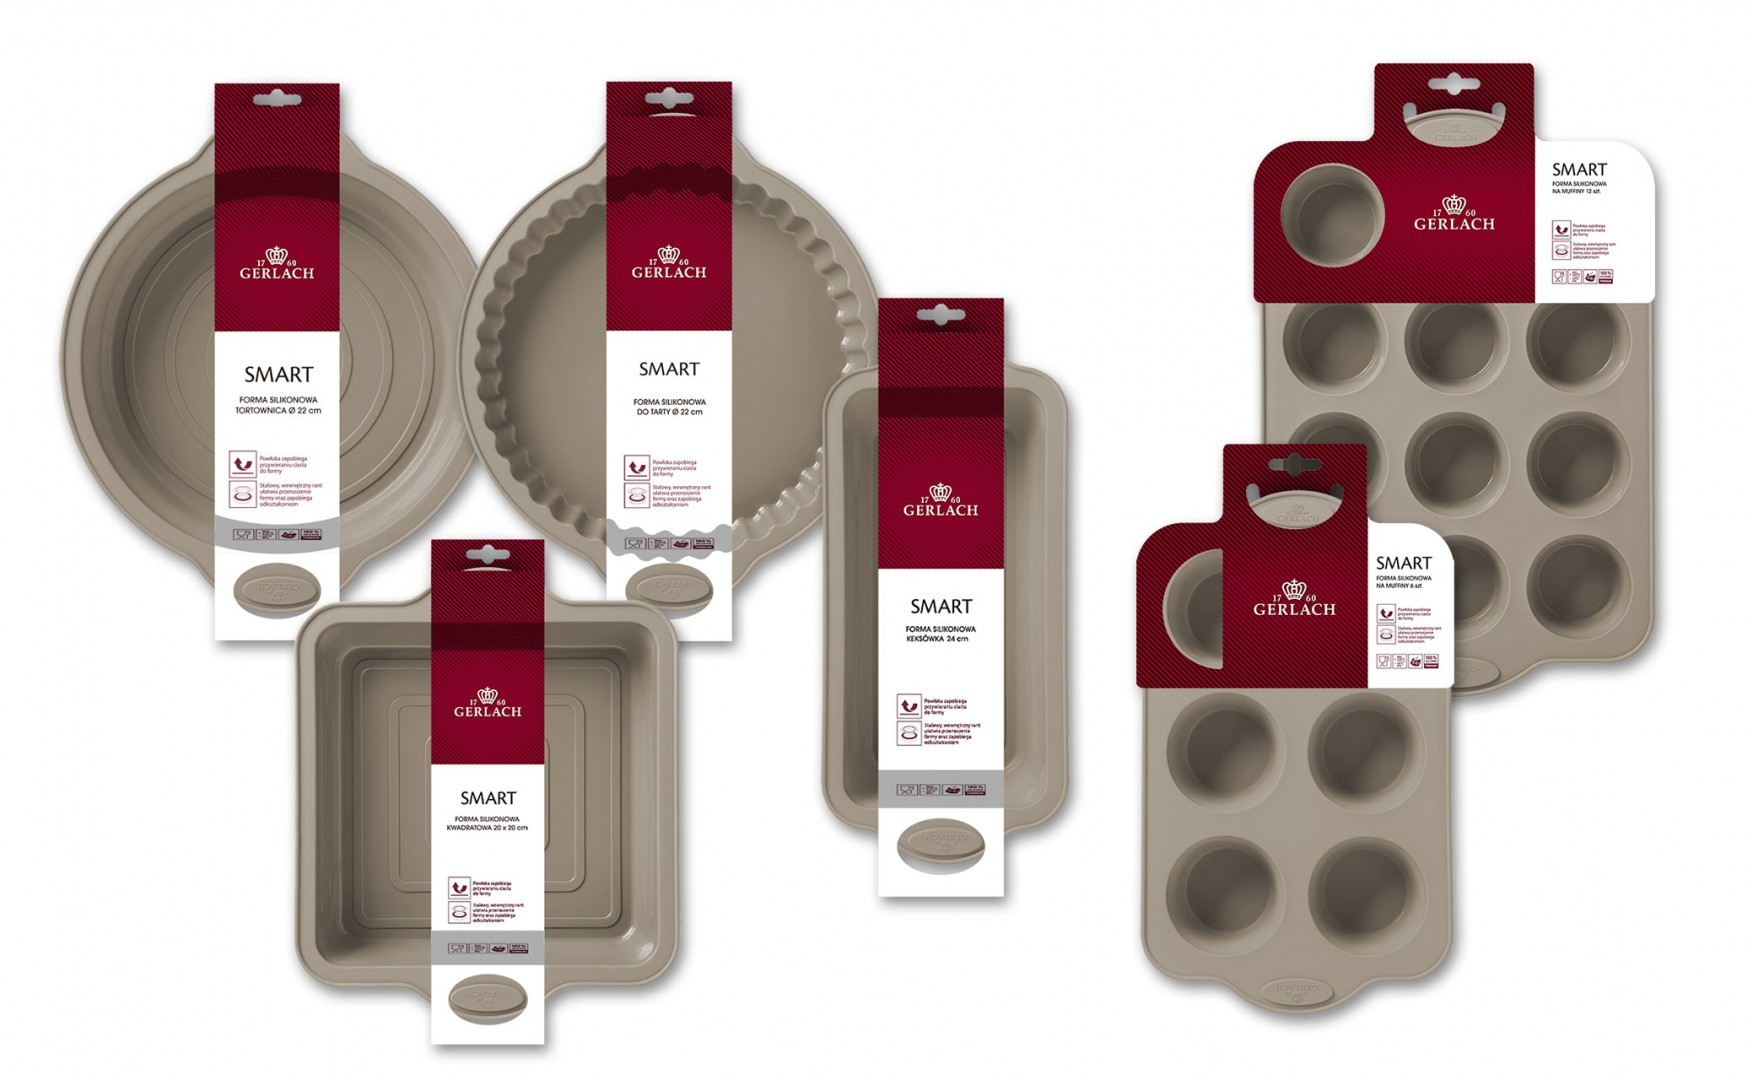 A 6-elements set of silicone baking forms